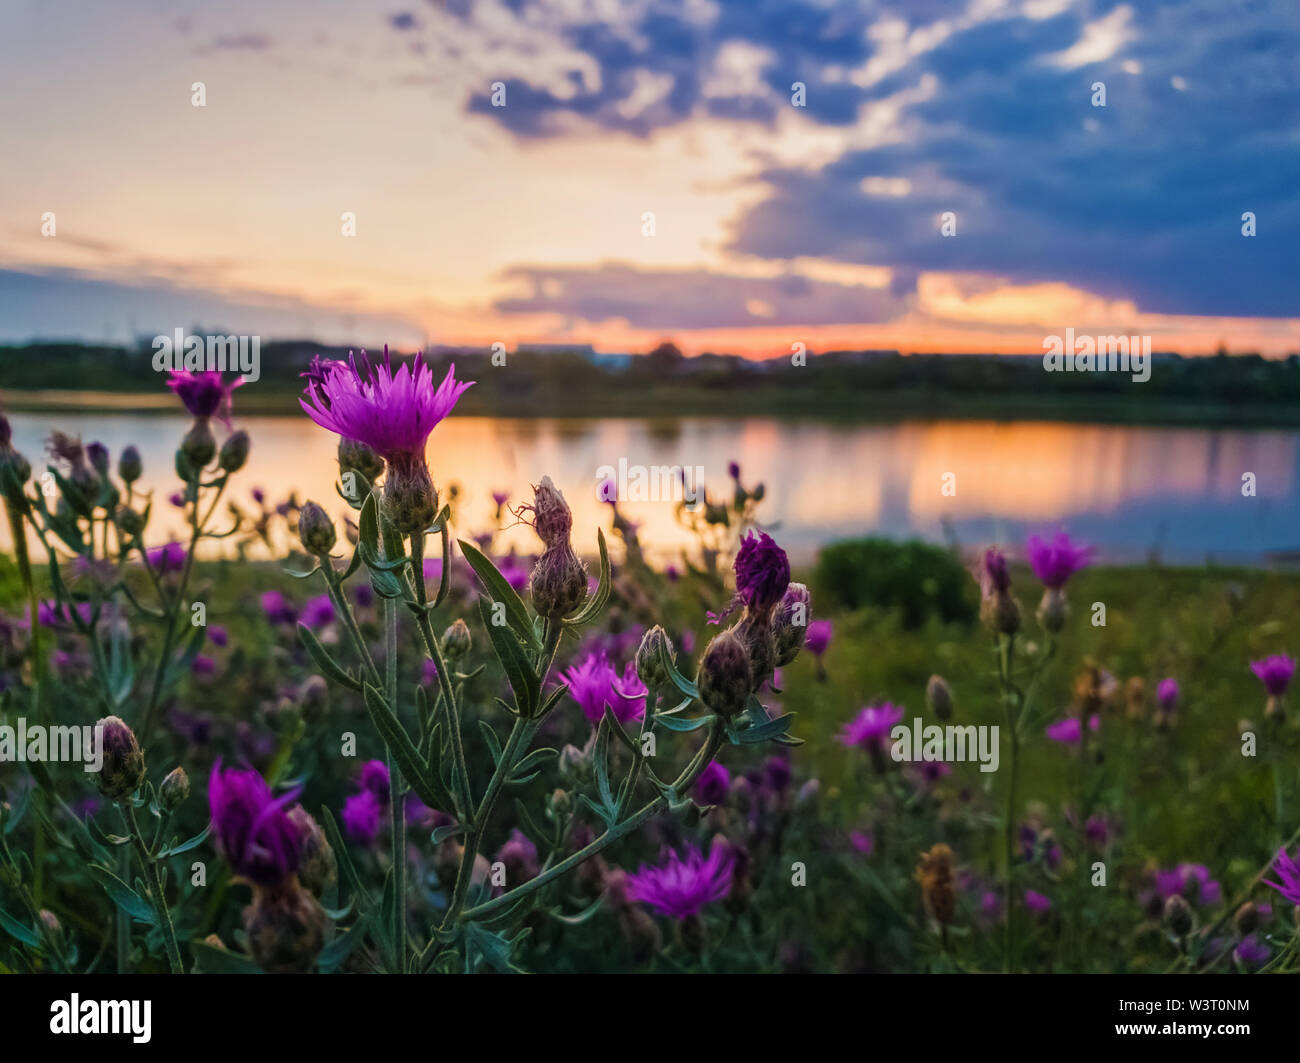 Close up of wild, purple shrub flowers blooming in the meadow near lake over sunset background in a calm summer evening. - Stock Image